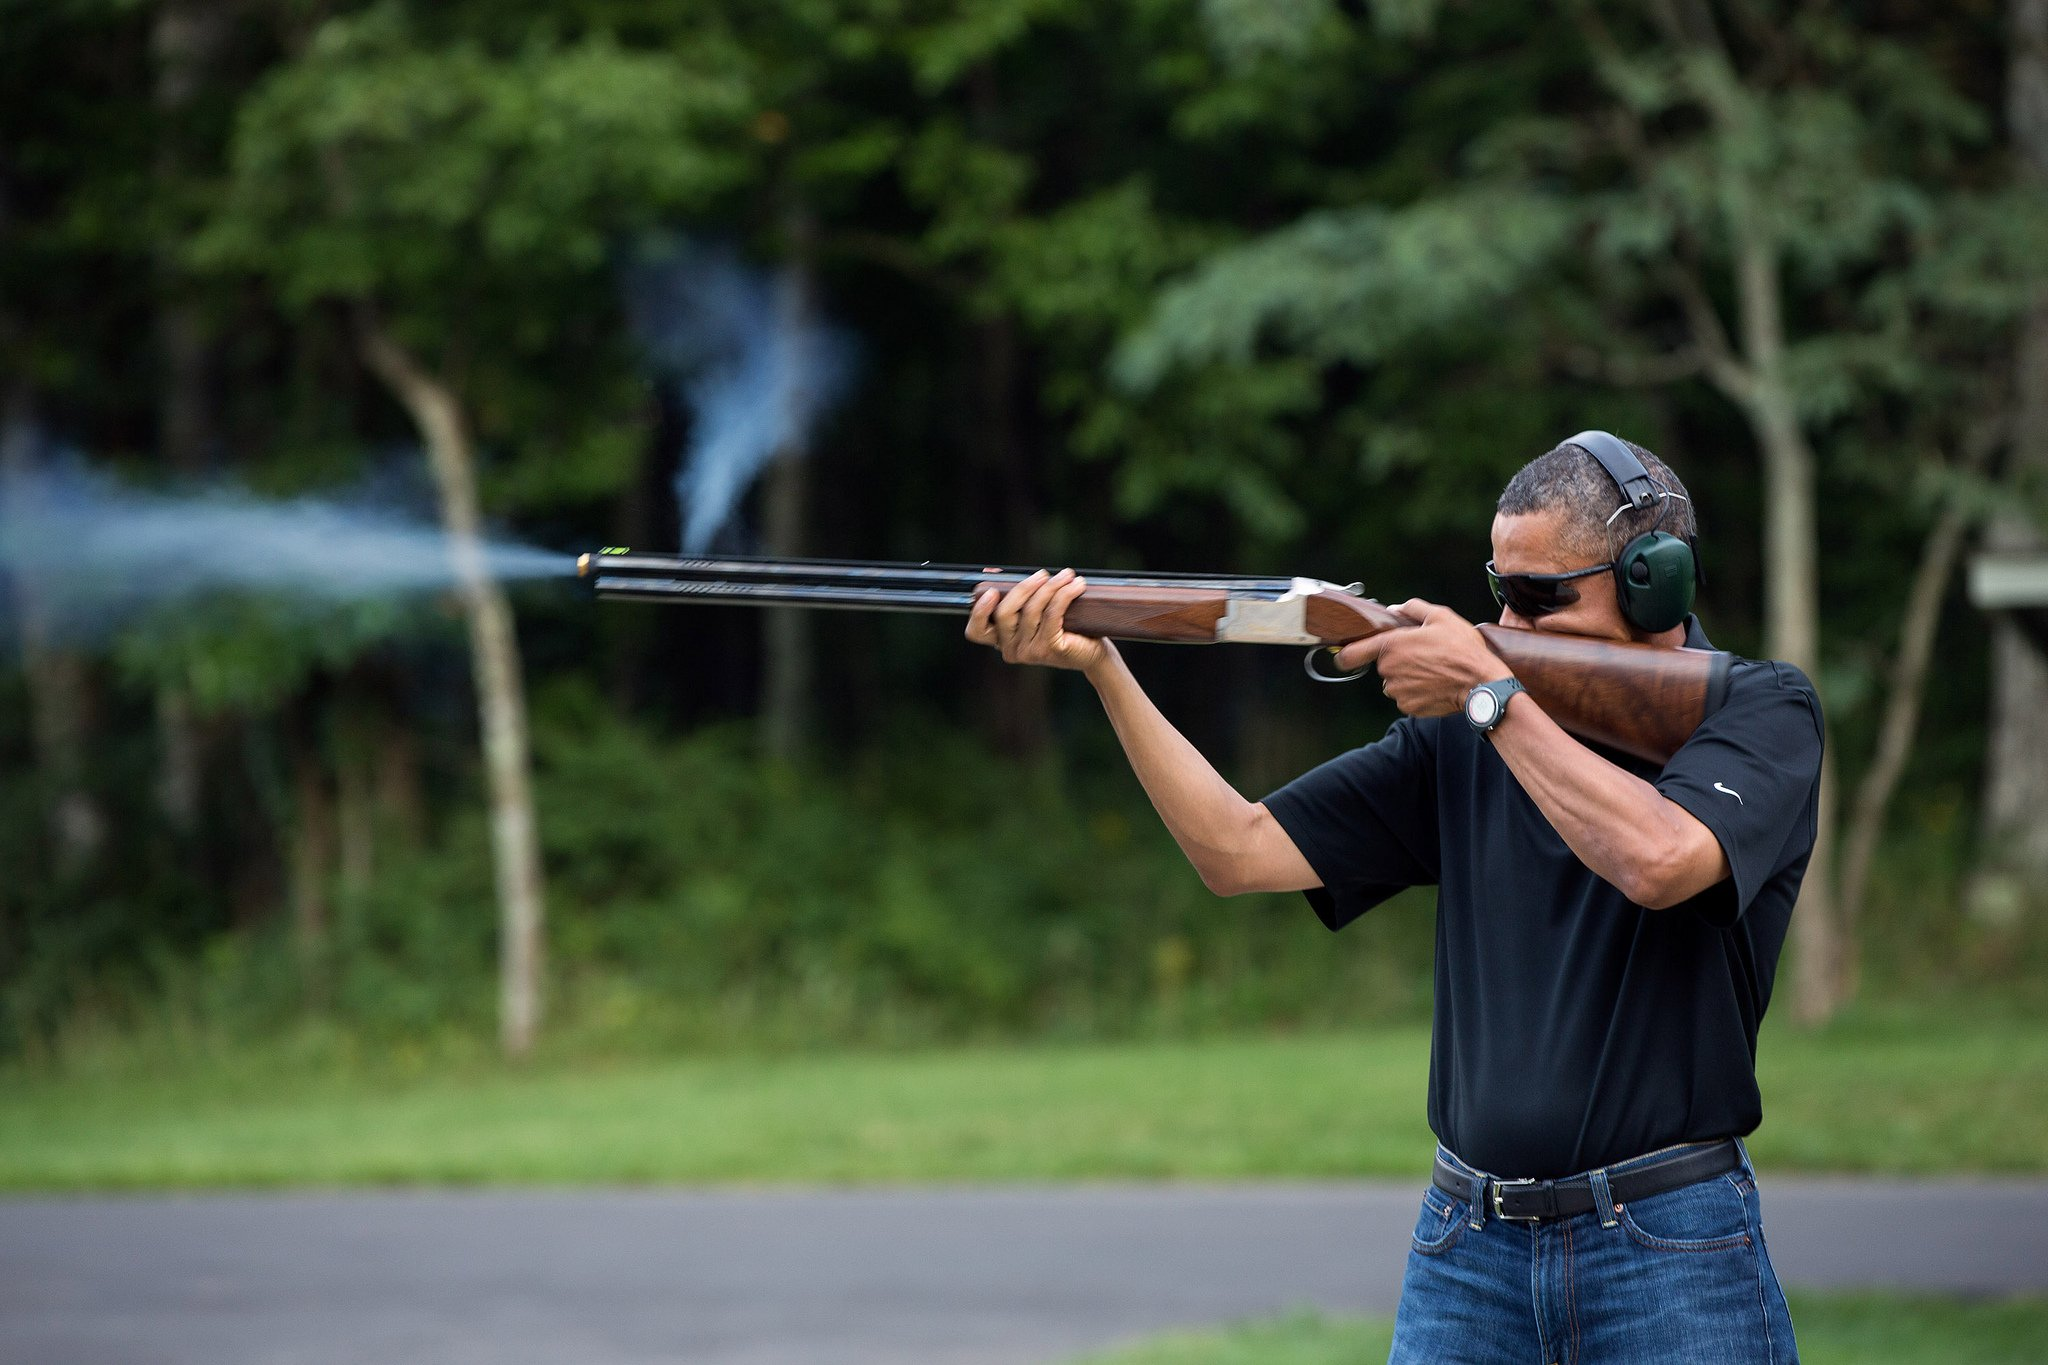 There Havent Been 18 School Shootings This Year But Obama Thinks There Have